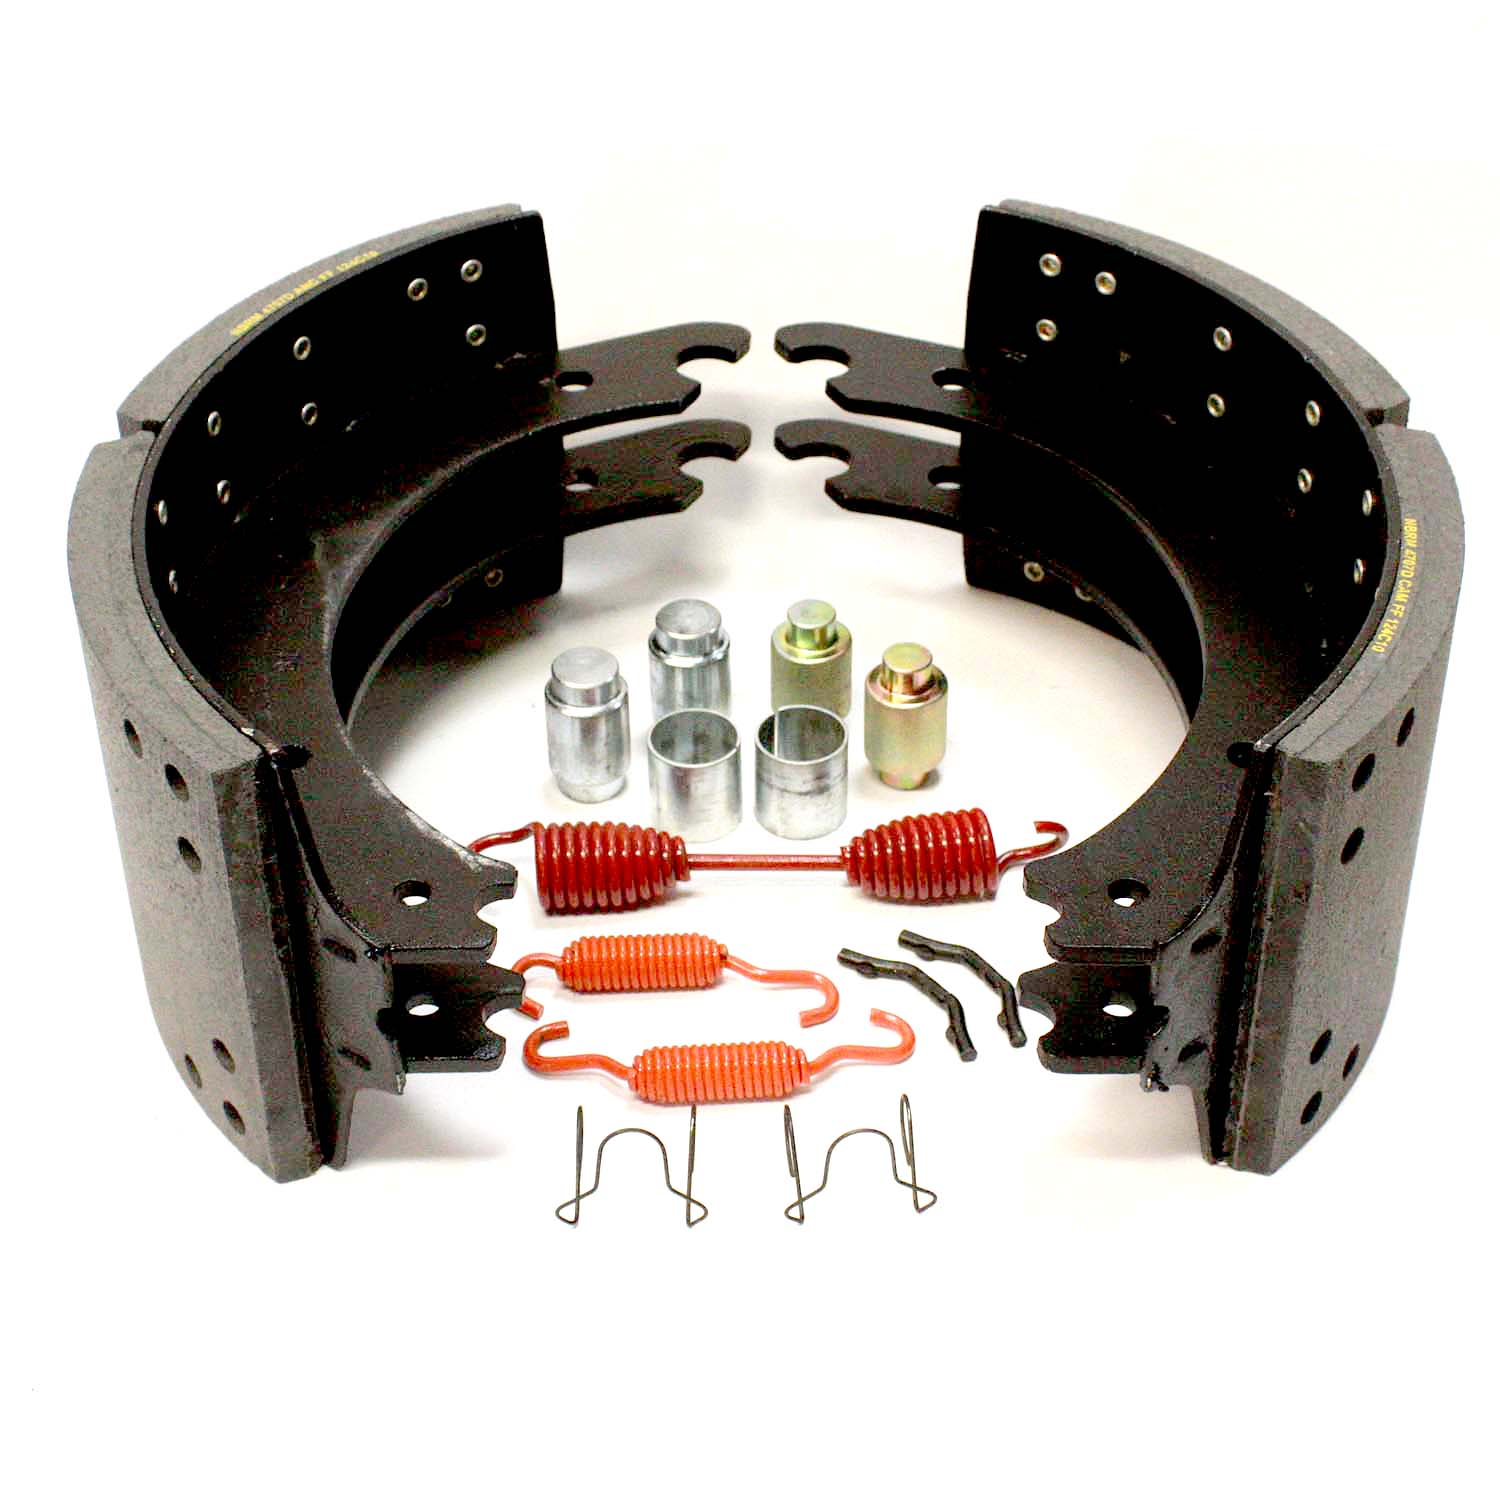 L4515Q-QK1HD Box of Brakes 23K